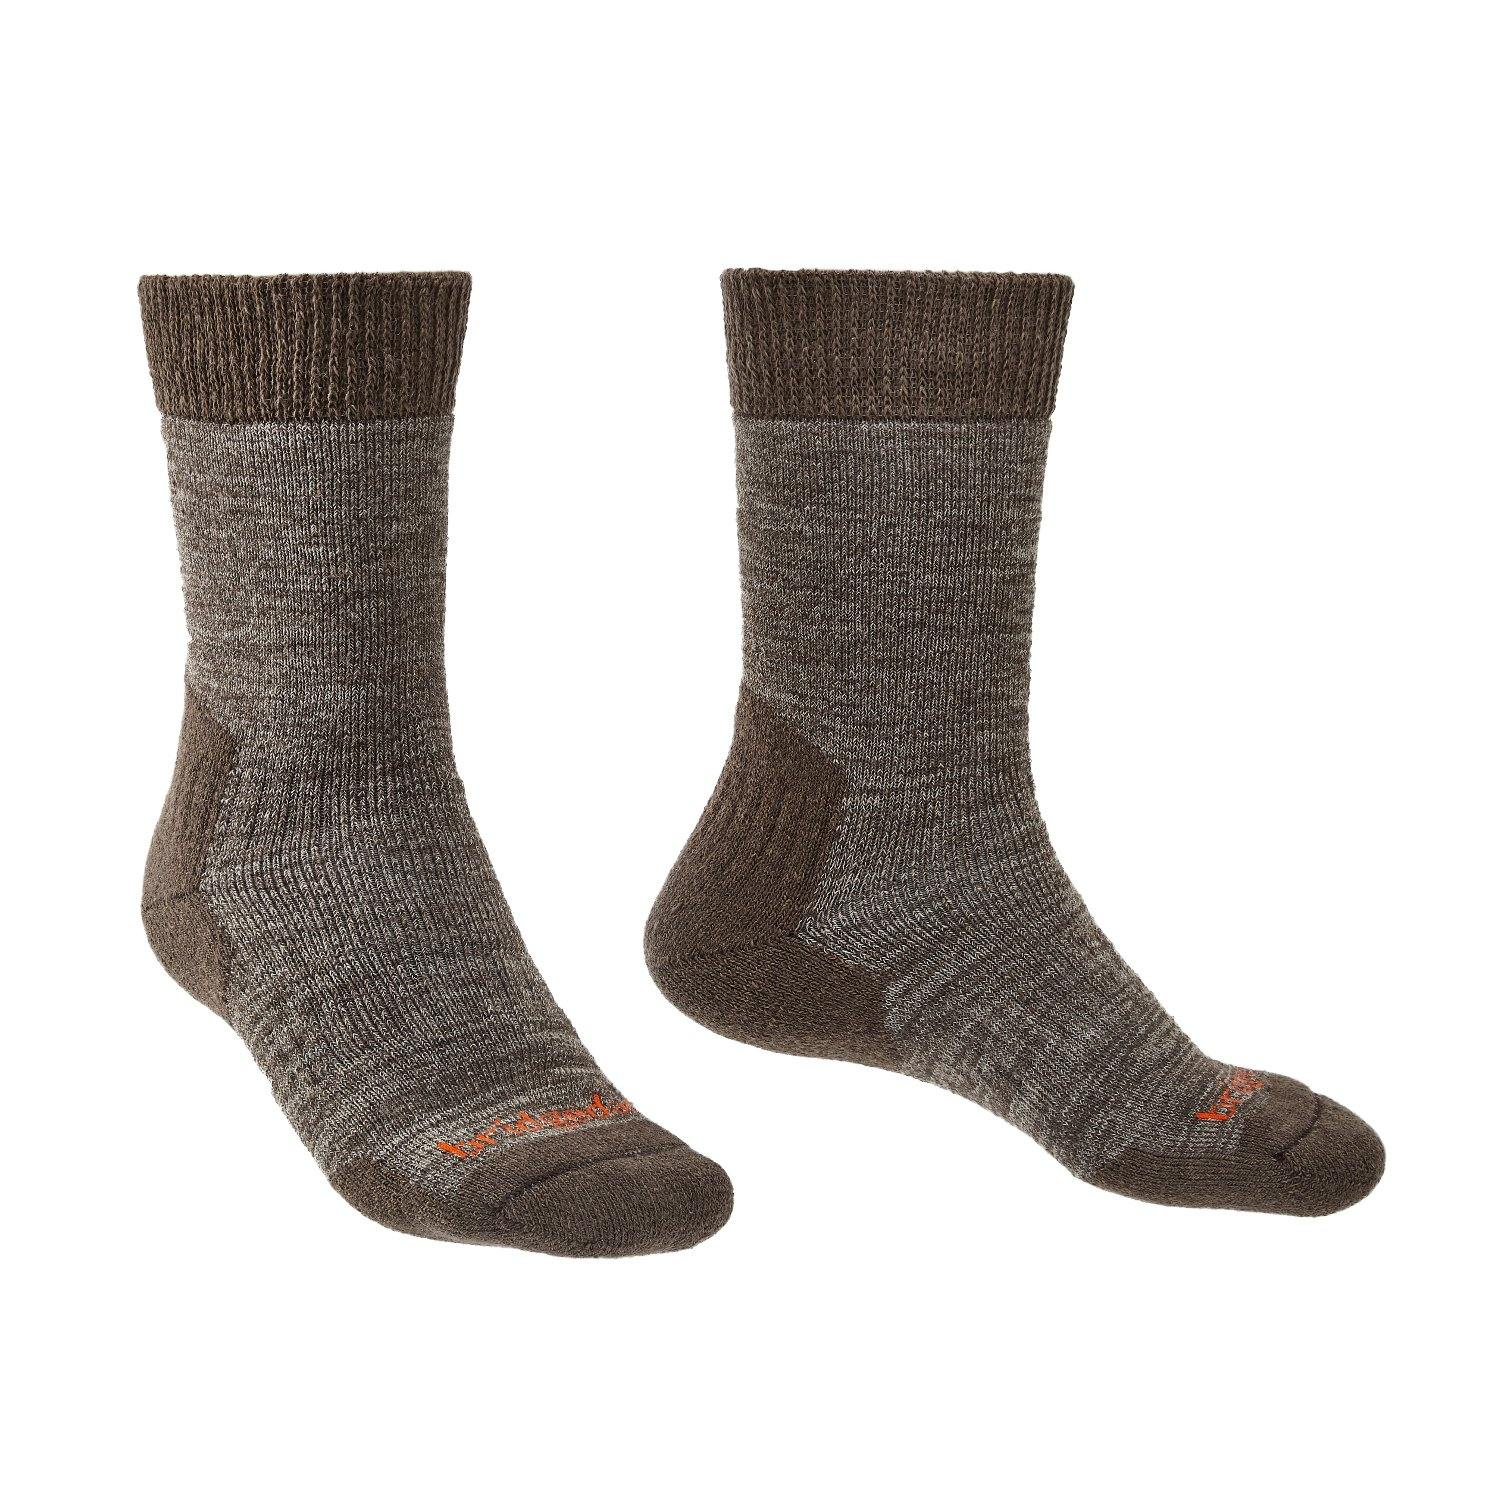 Bridgedale MERINO EXPEDITION Comfort Socks